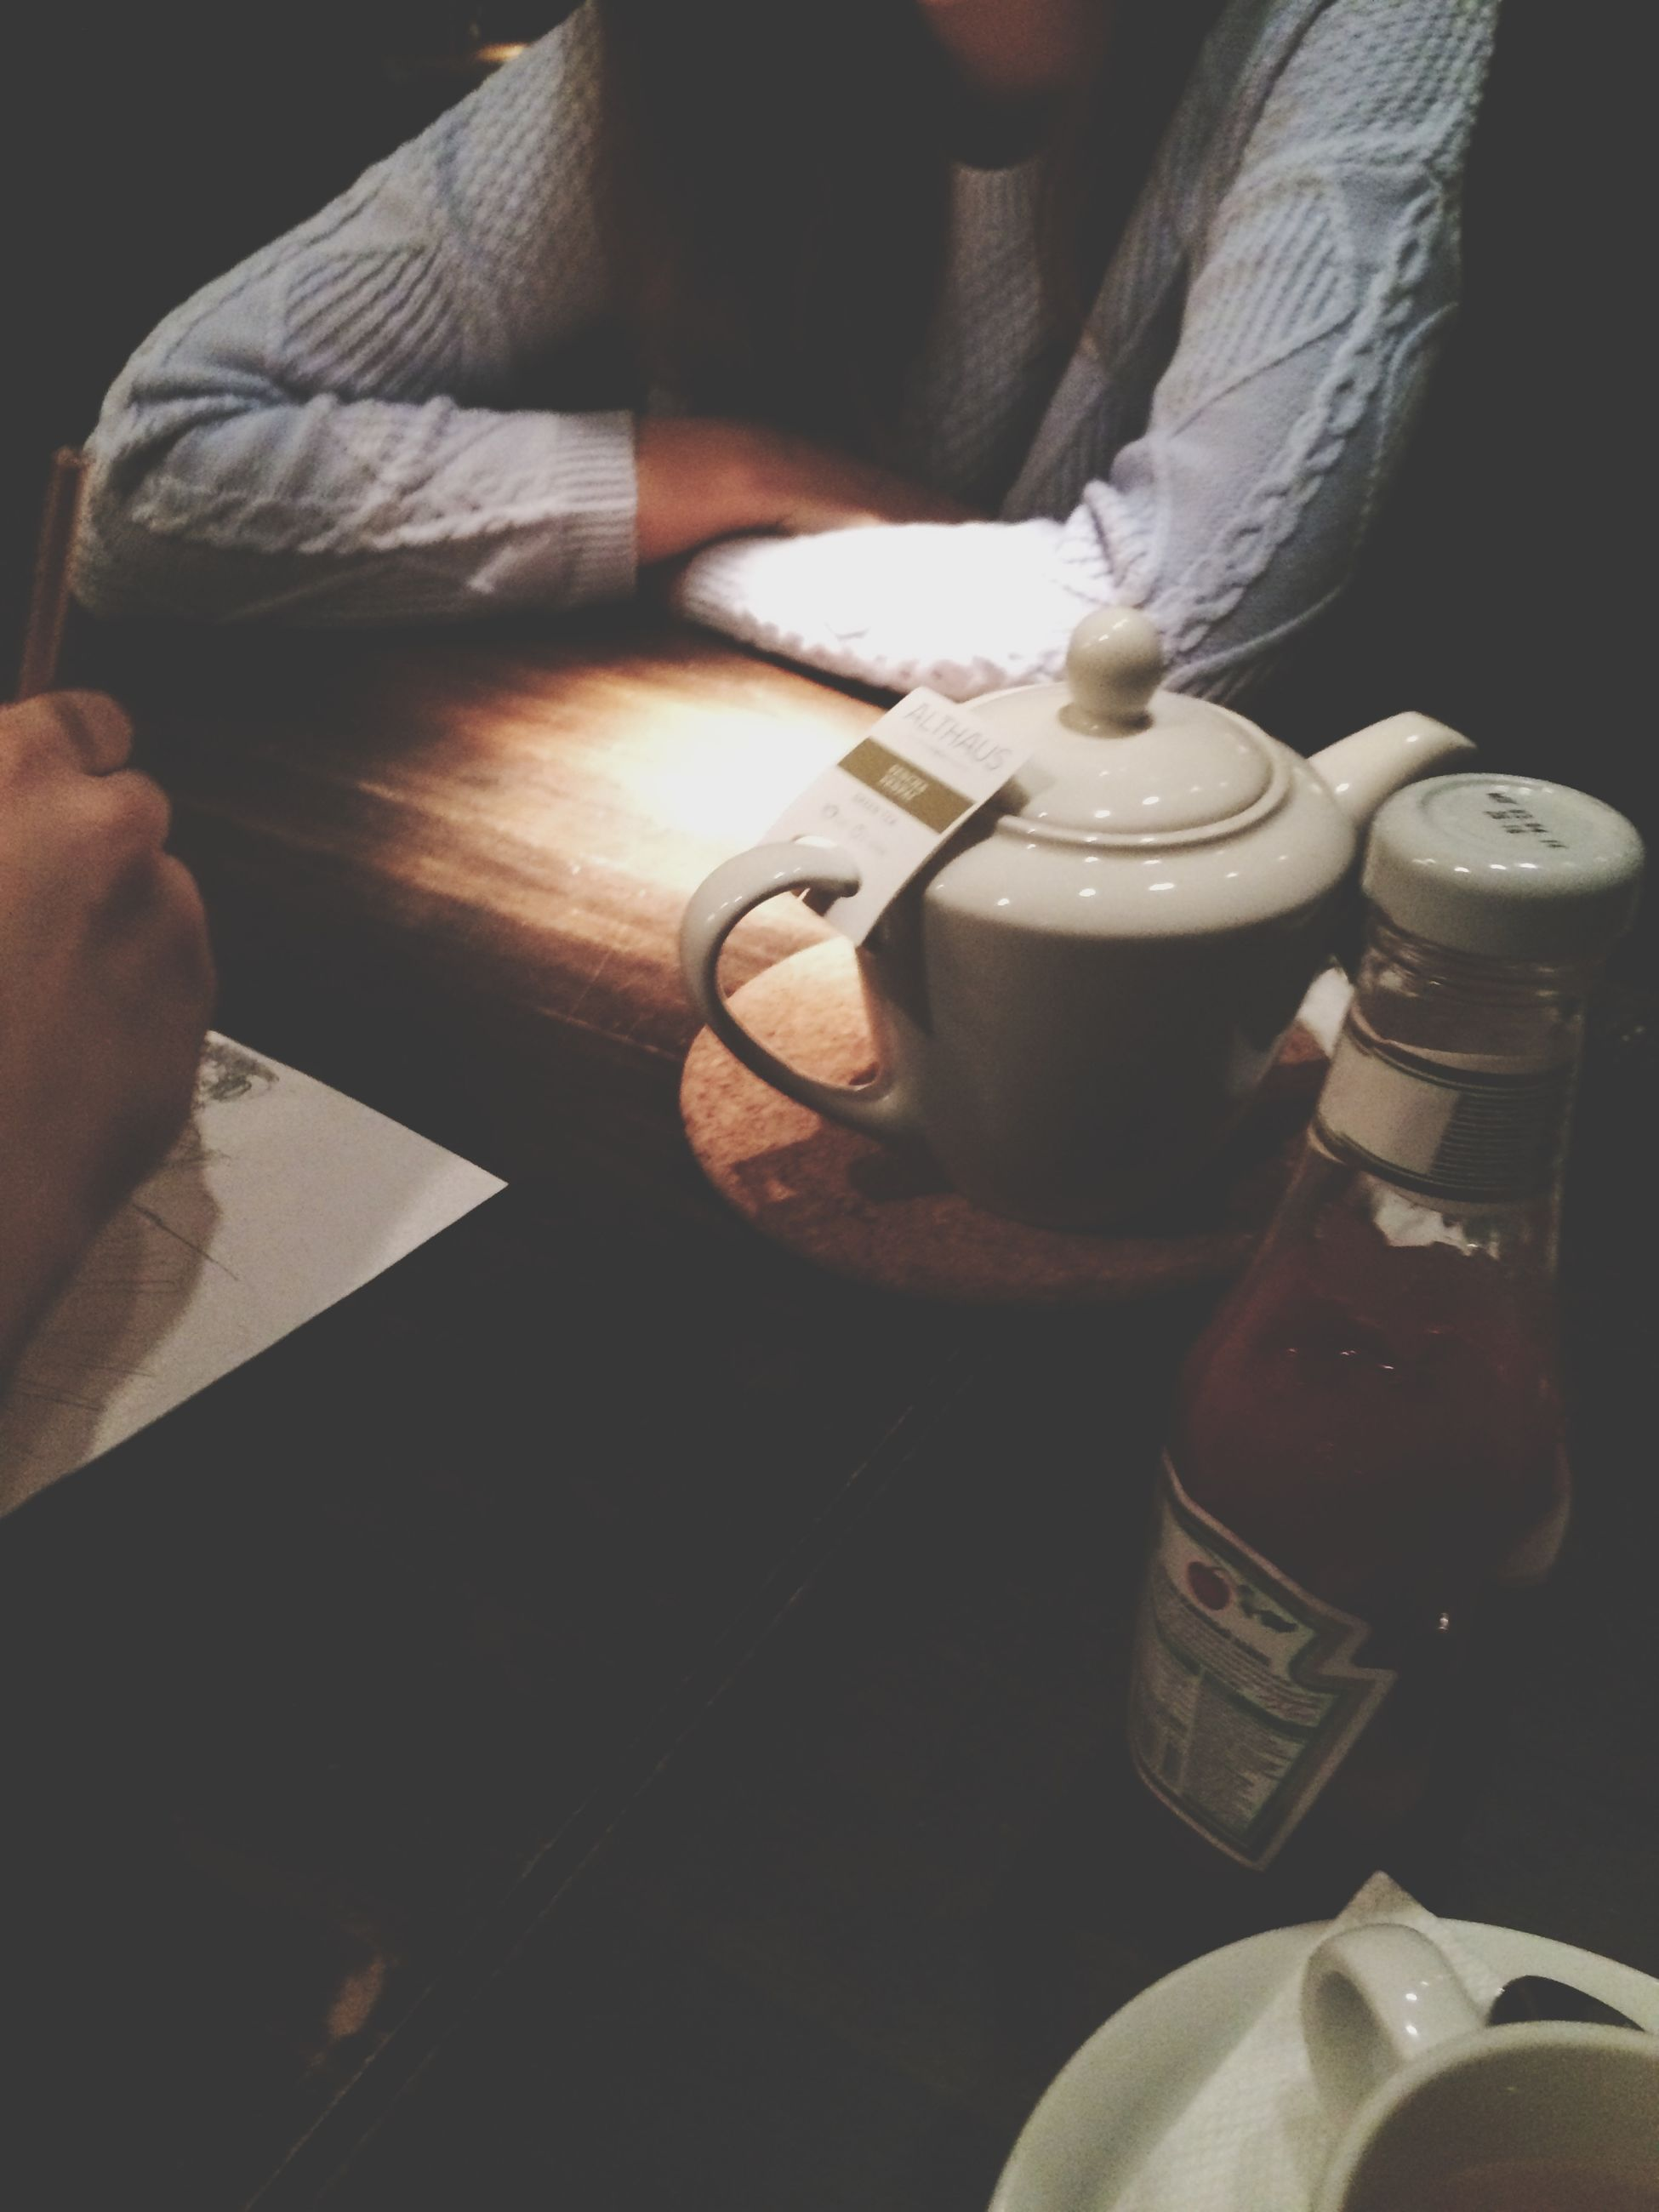 indoors, person, holding, part of, food and drink, men, lifestyles, table, cropped, unrecognizable person, coffee cup, drink, close-up, high angle view, leisure activity